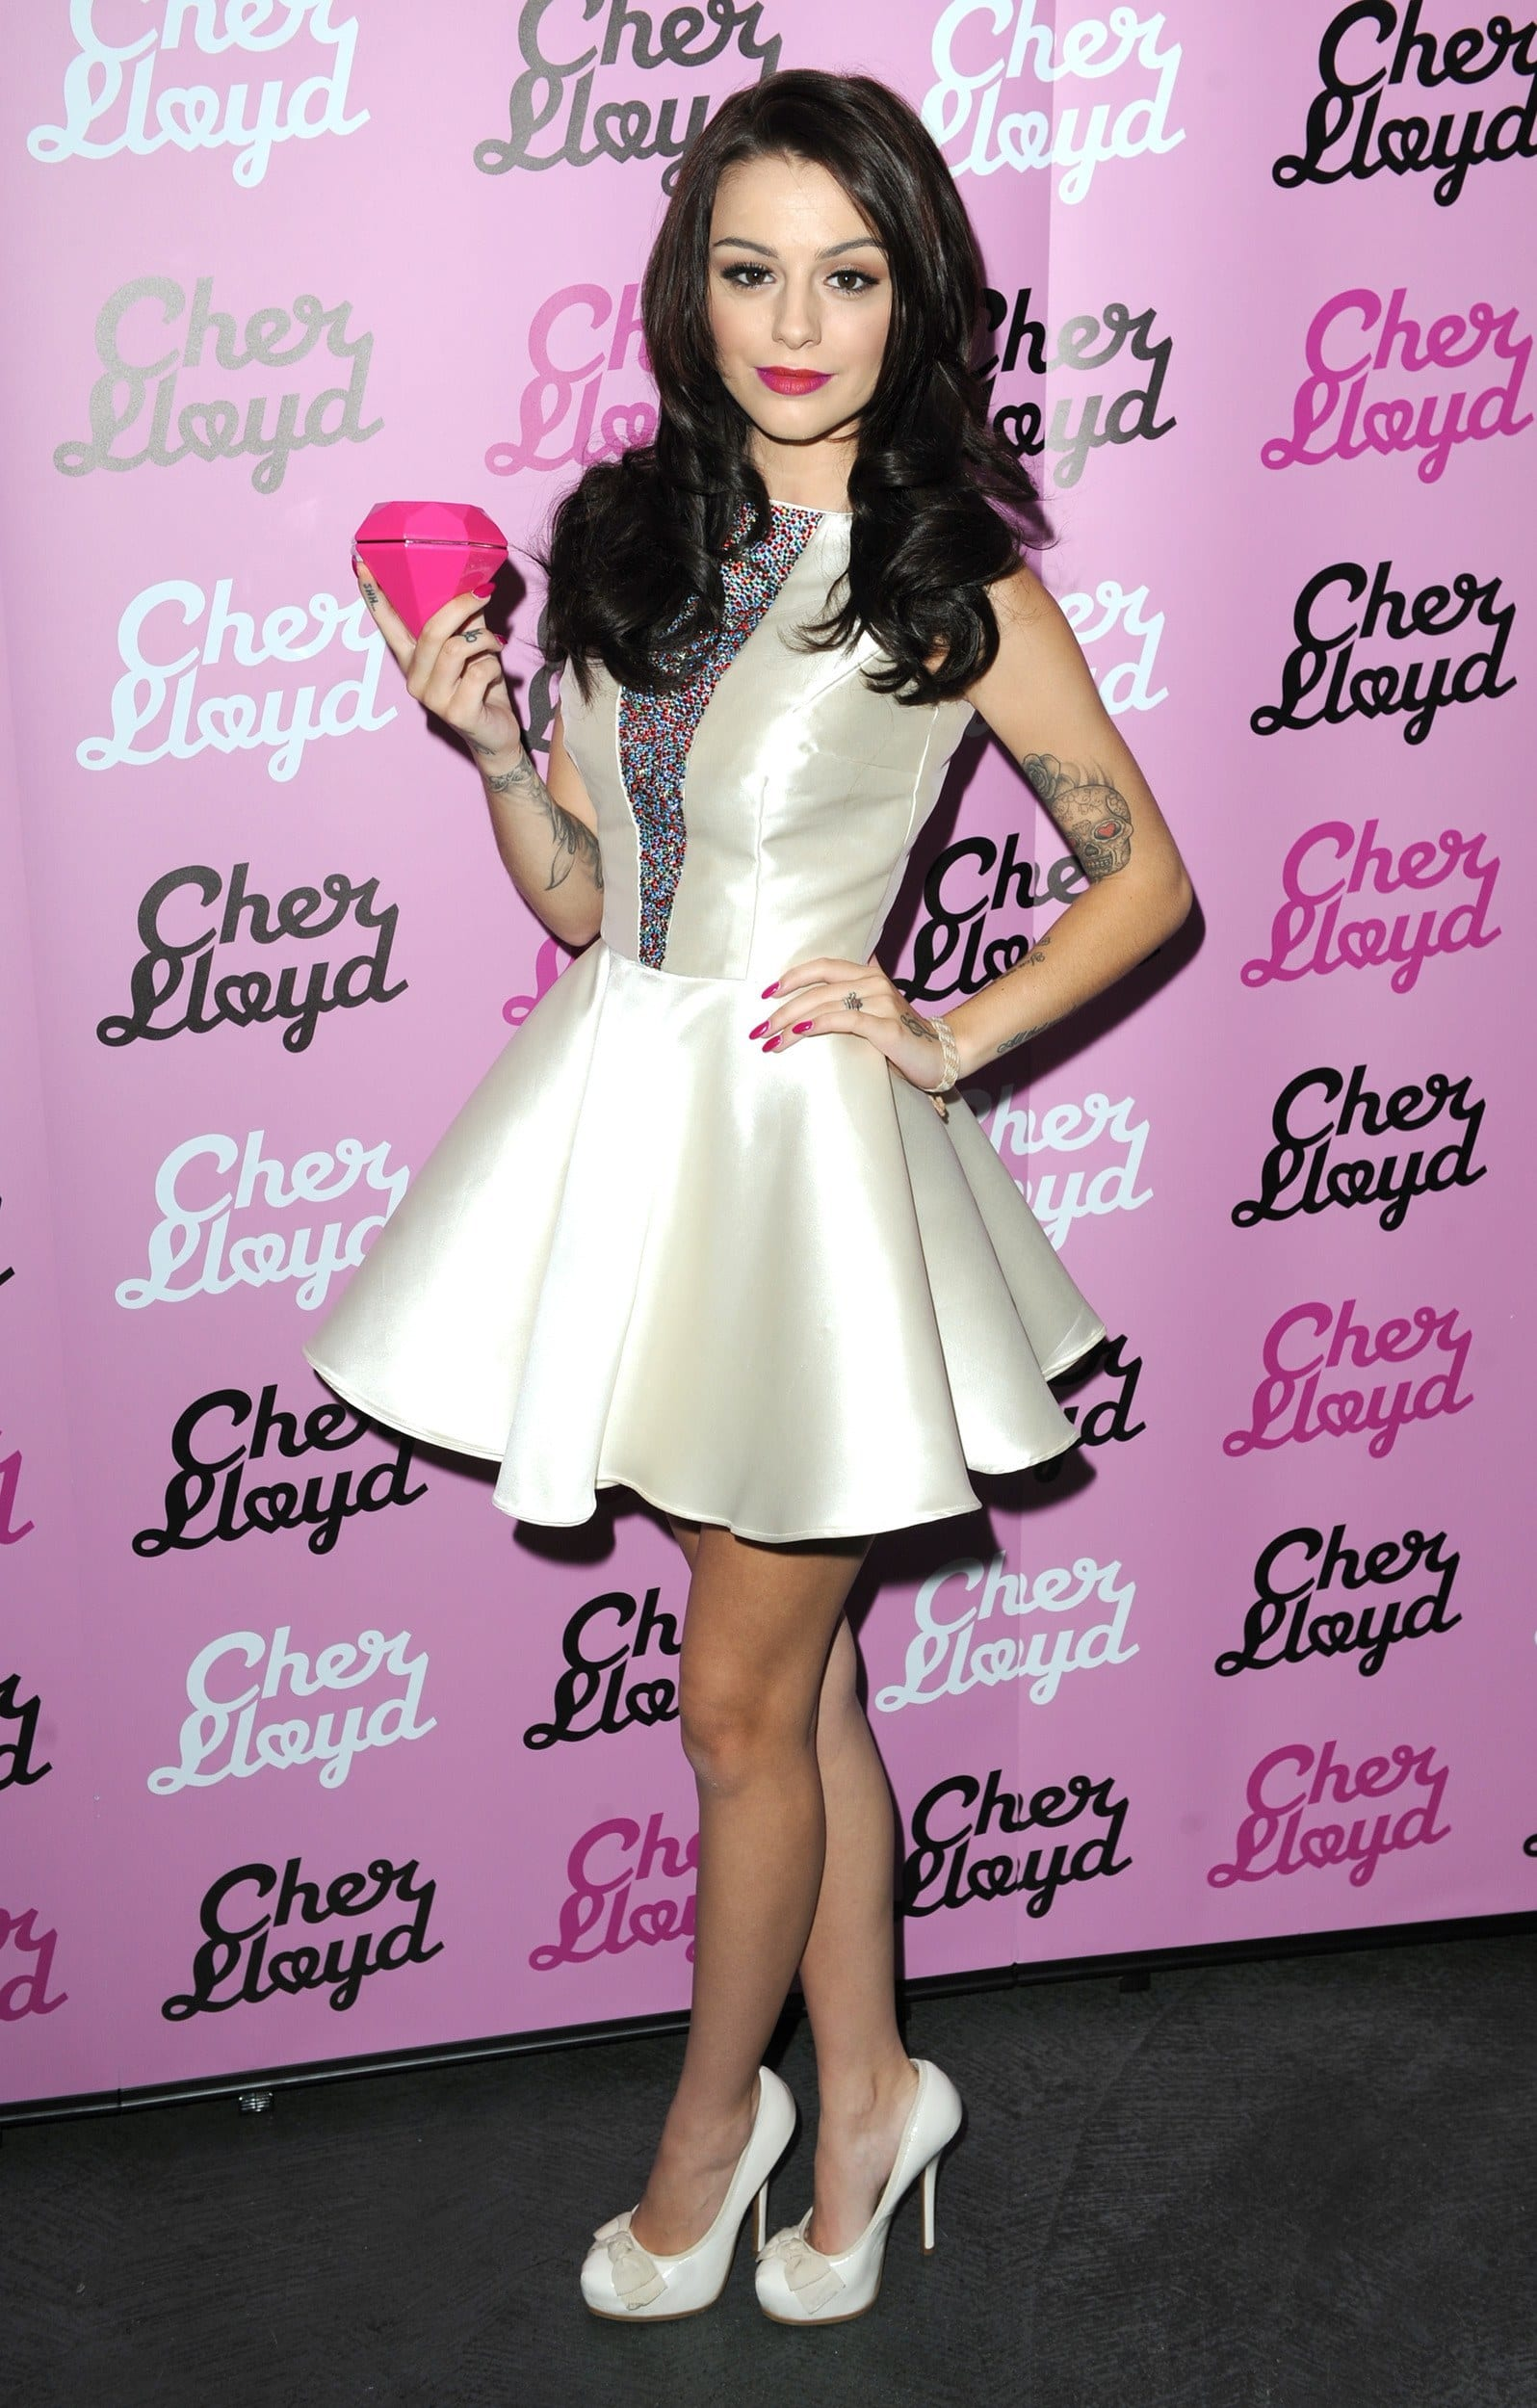 Cher Lloyd stylish dress